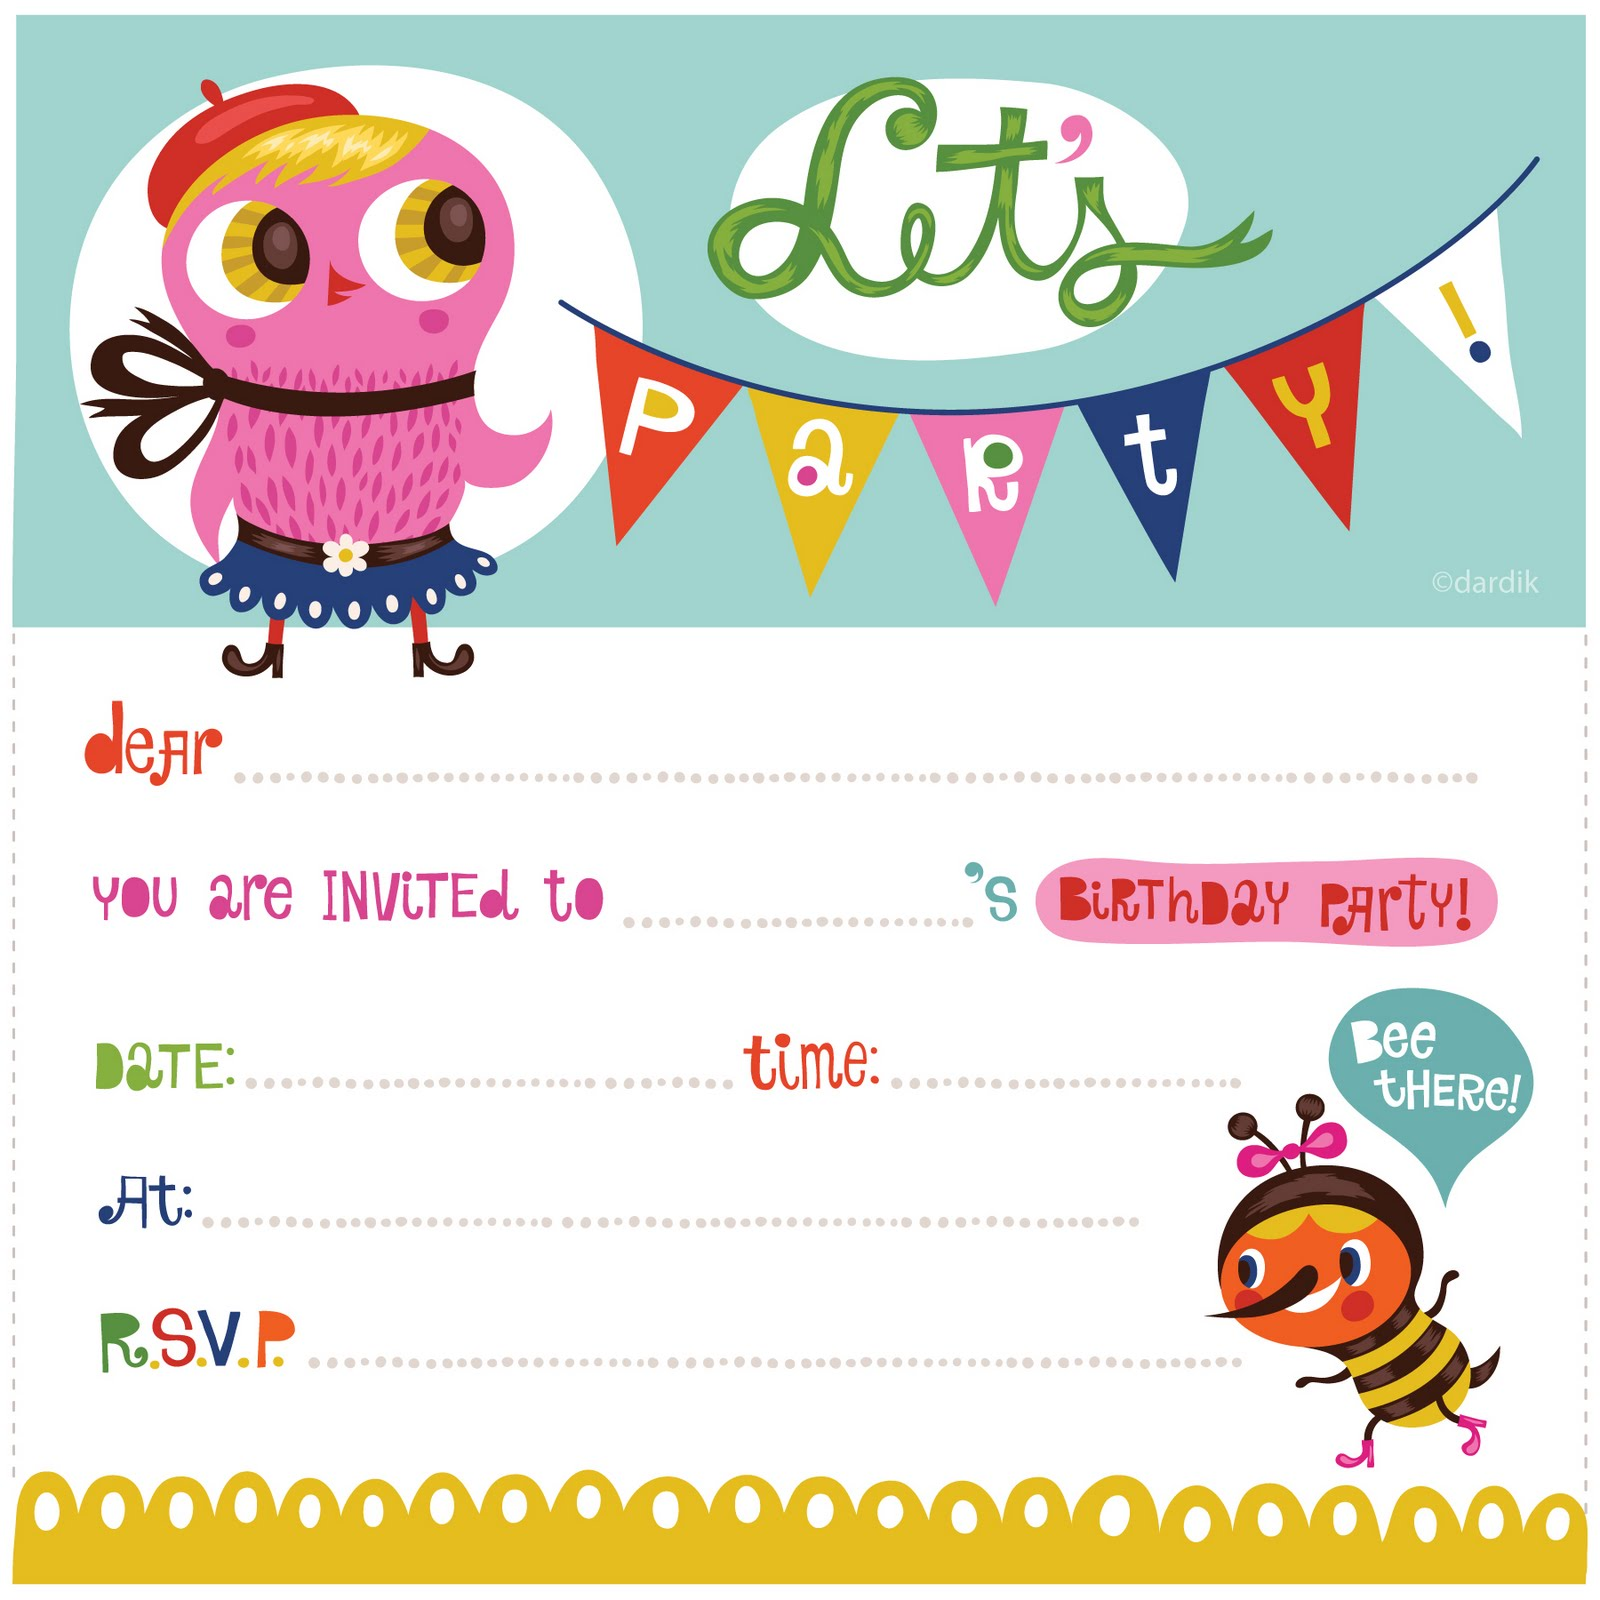 Kids Birthday Party Invitation Card Ideas For Your Child Special Day Designs On